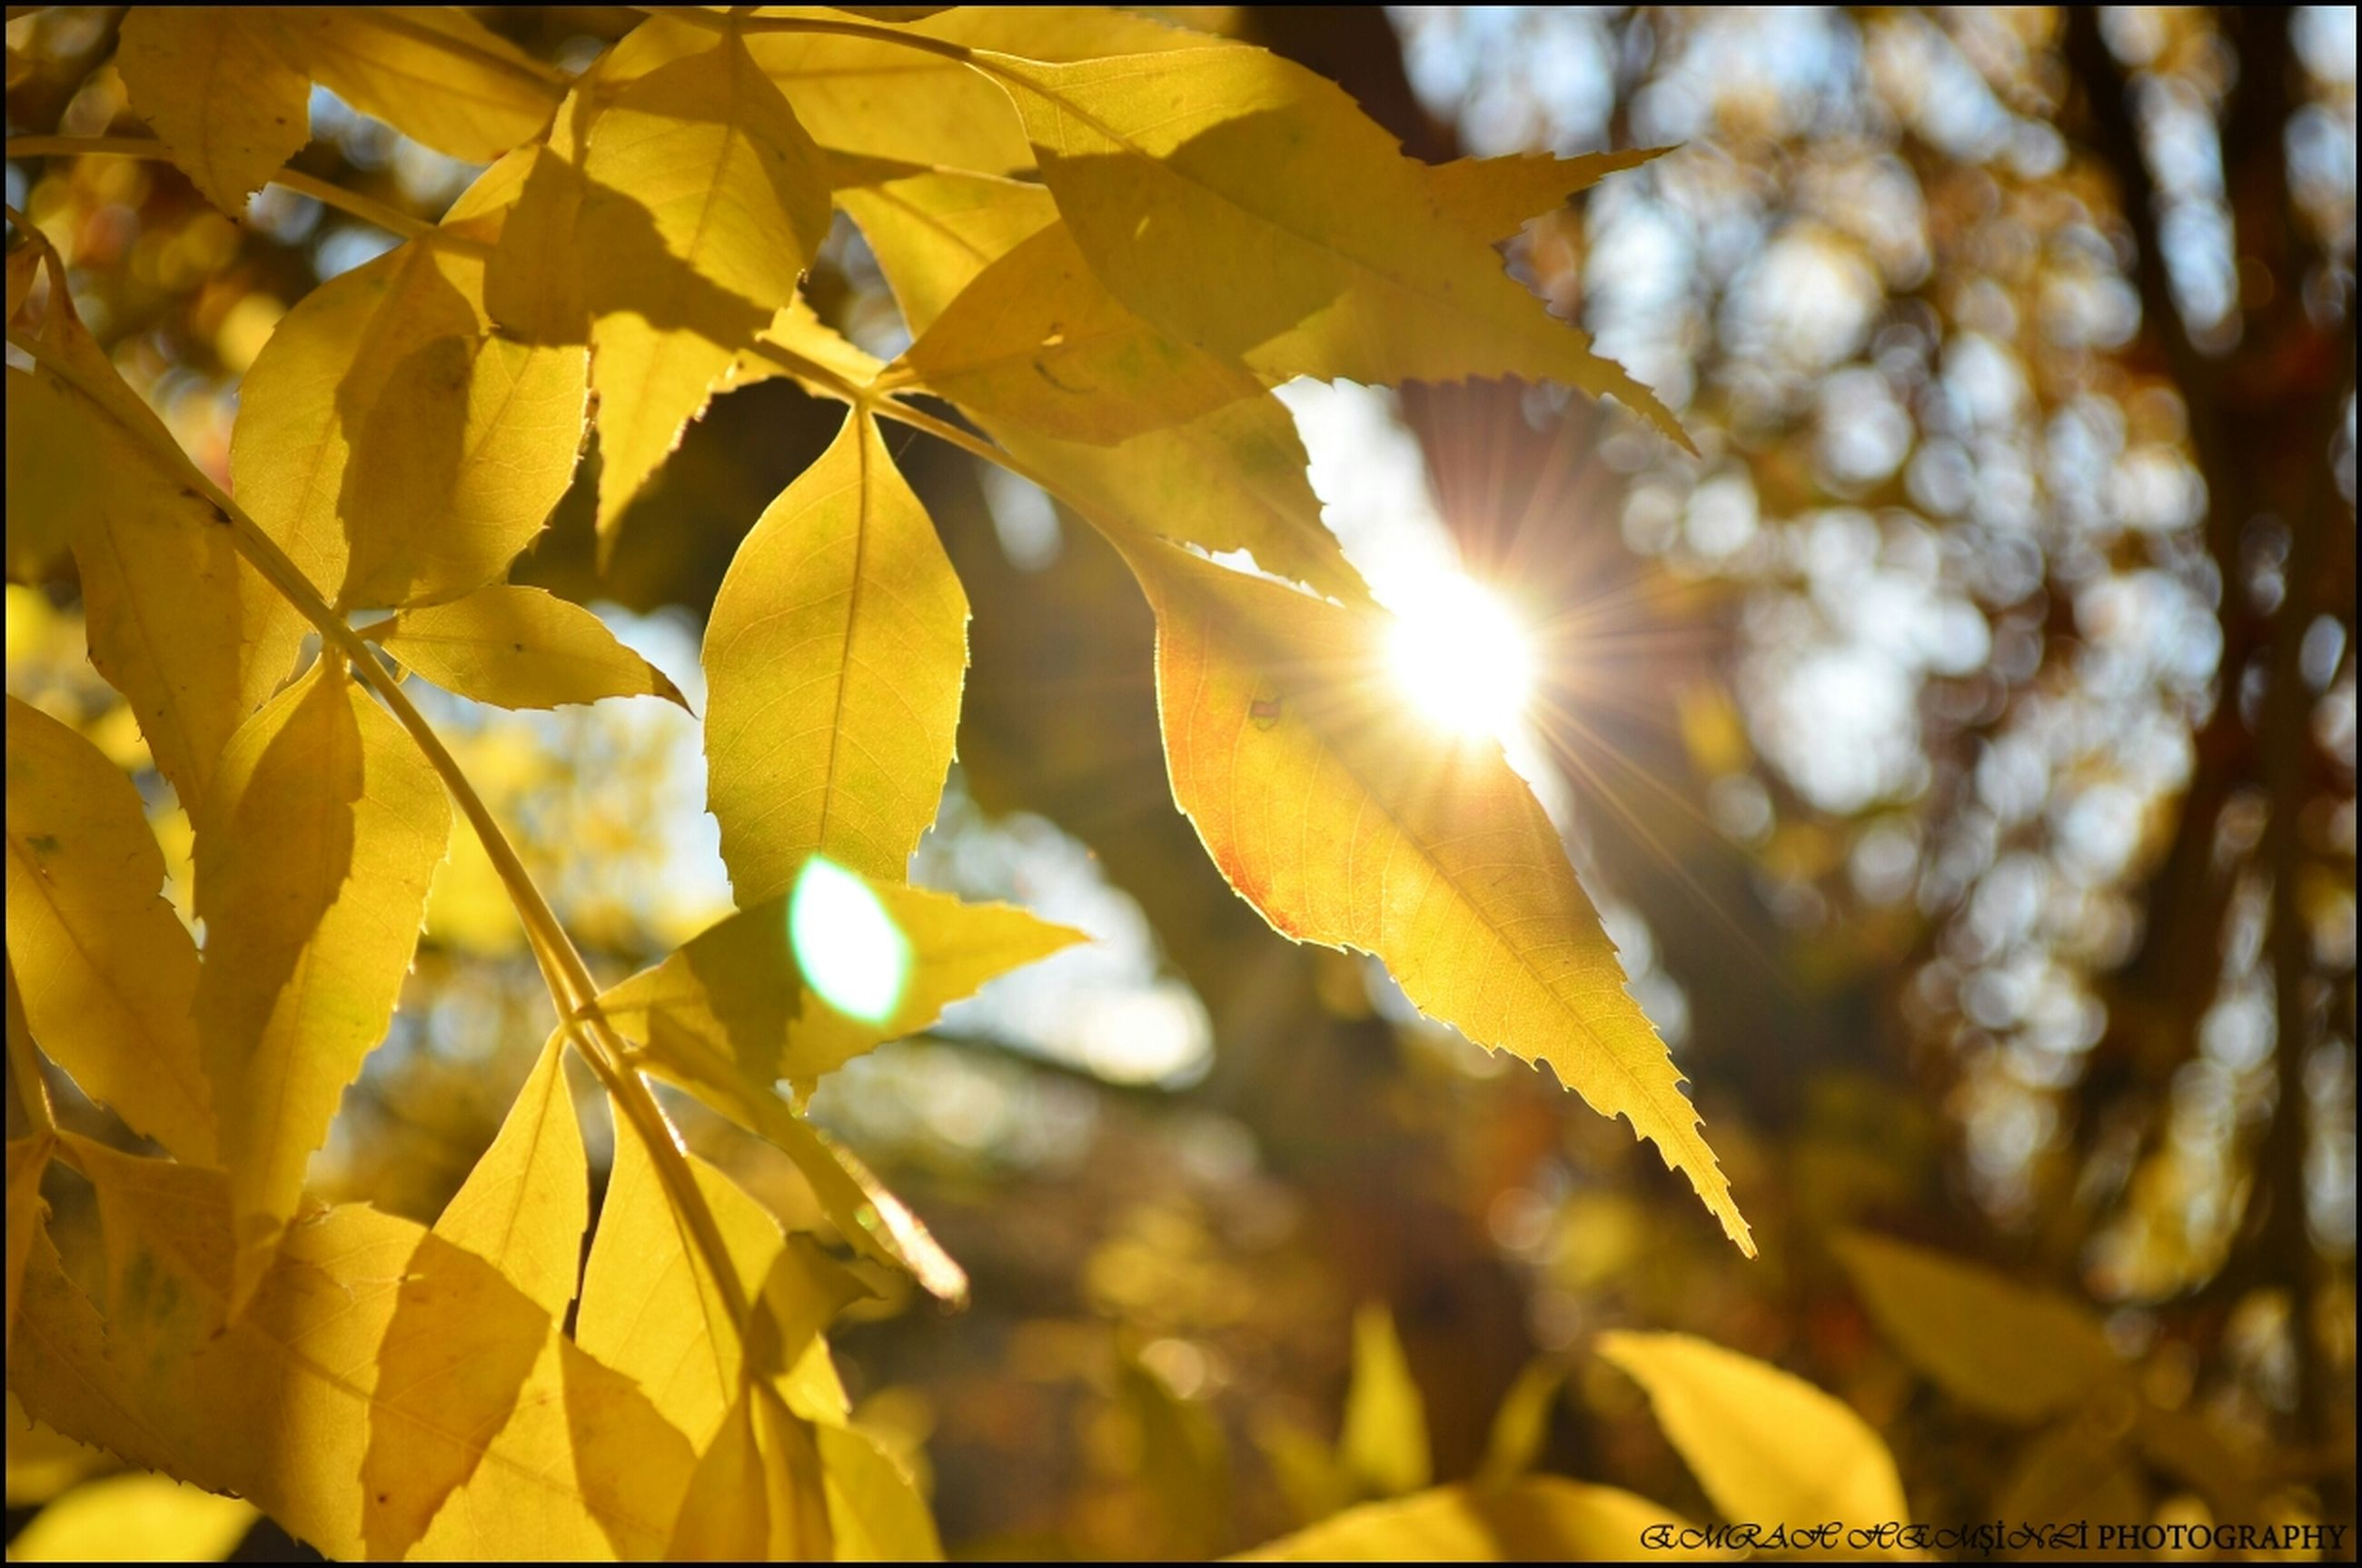 yellow, growth, sunlight, leaf, nature, sun, branch, focus on foreground, tree, beauty in nature, close-up, sunbeam, tranquility, low angle view, outdoors, lens flare, no people, selective focus, season, day